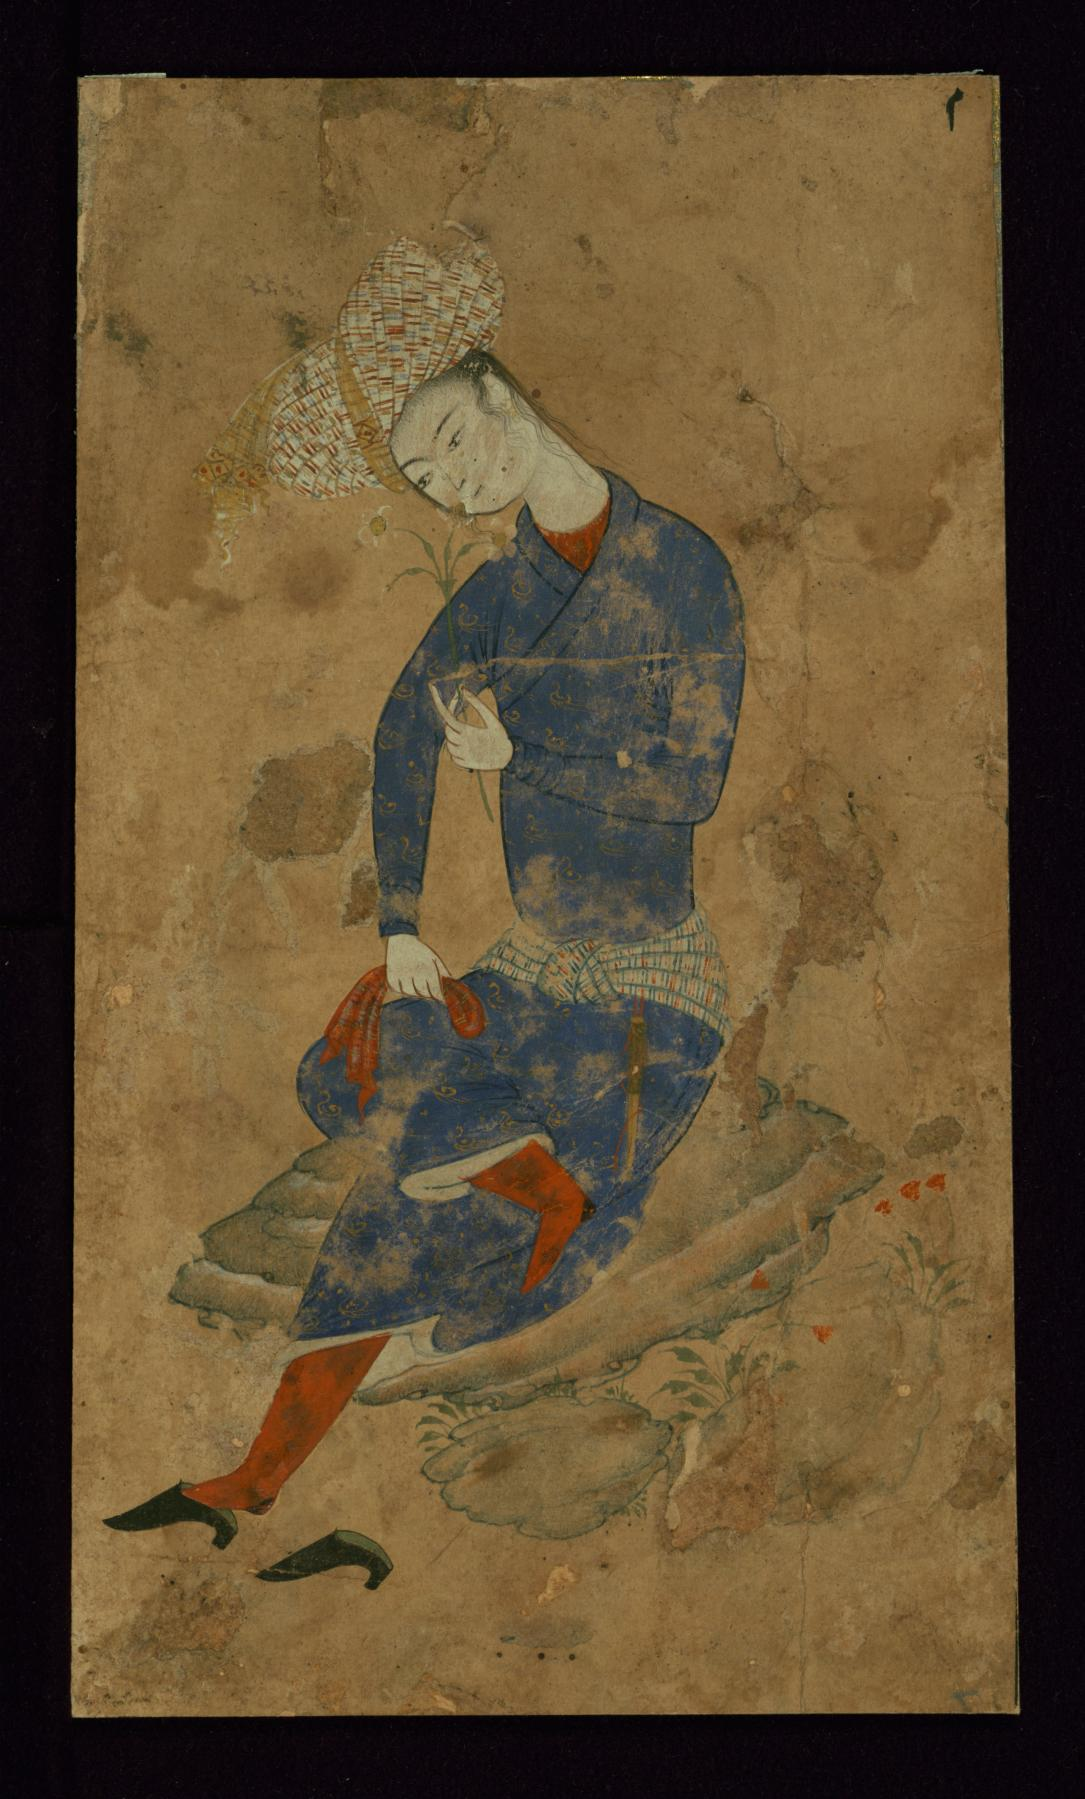 http://upload.wikimedia.org/wikipedia/commons/f/f9/Iranian_-_A_Young_Man_with_a_Flower_-_Walters_W680A_-_Full_Page.jpg